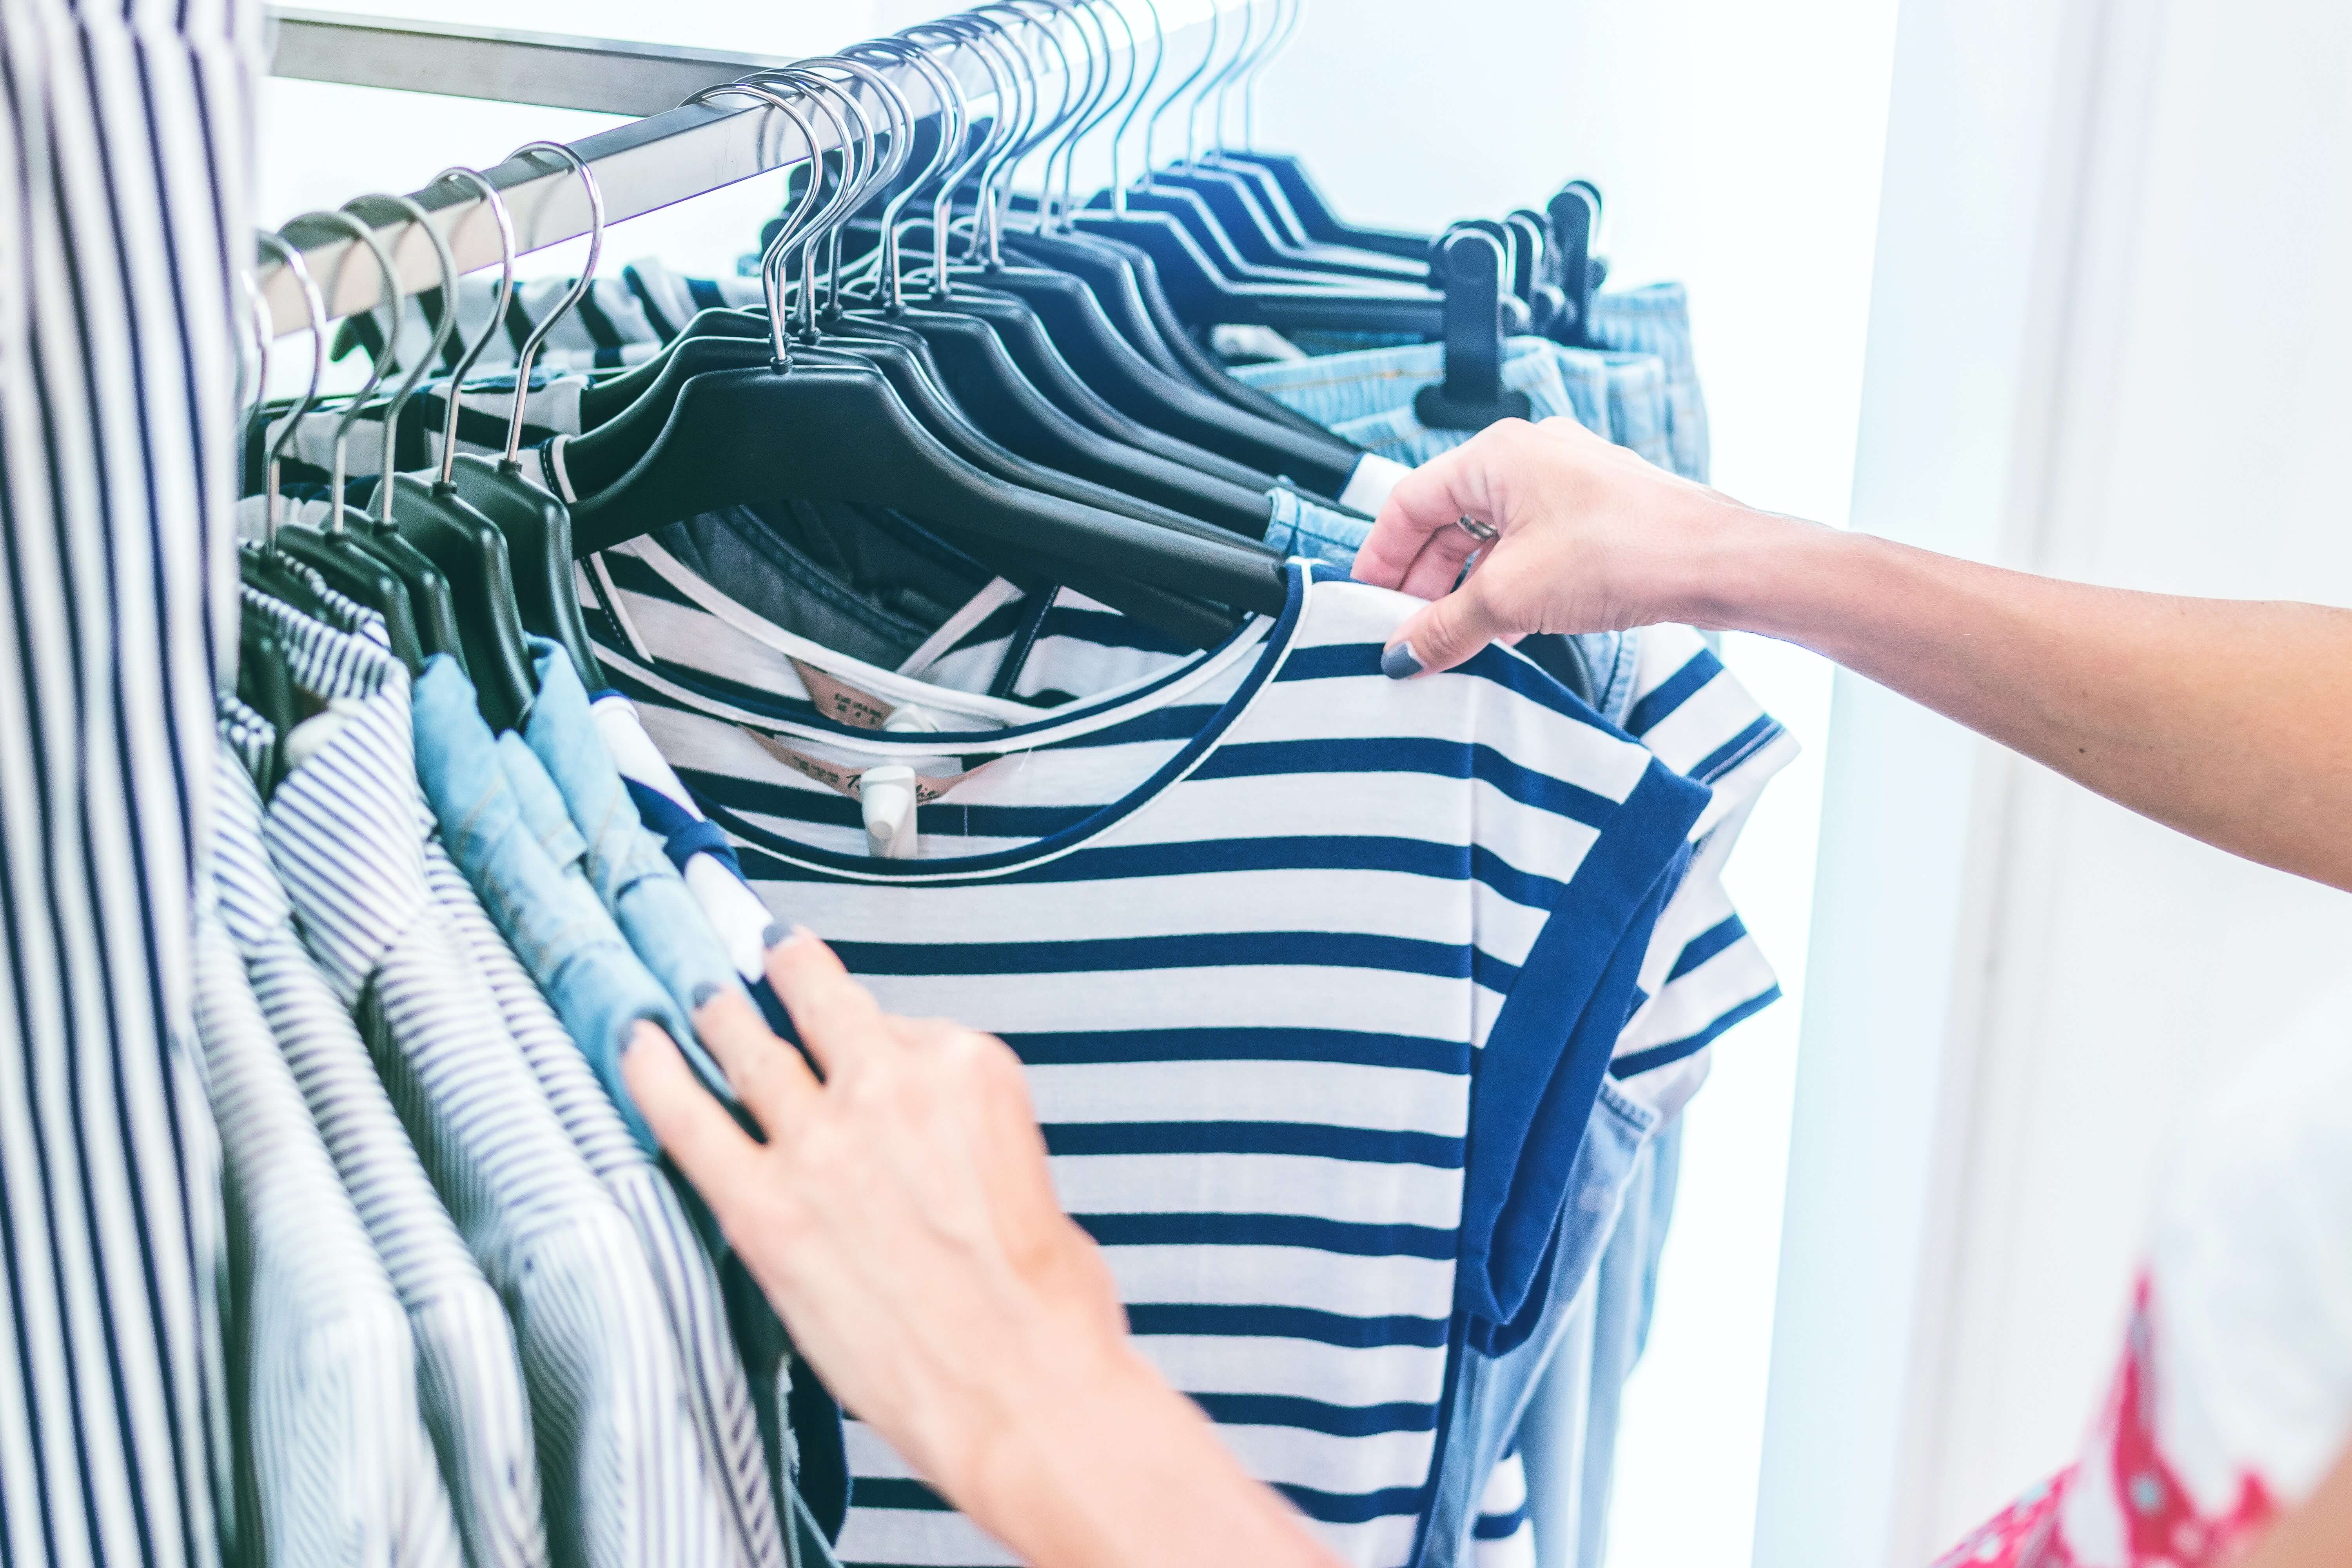 BeLive Technology partners with online retail giant ZALORA to…